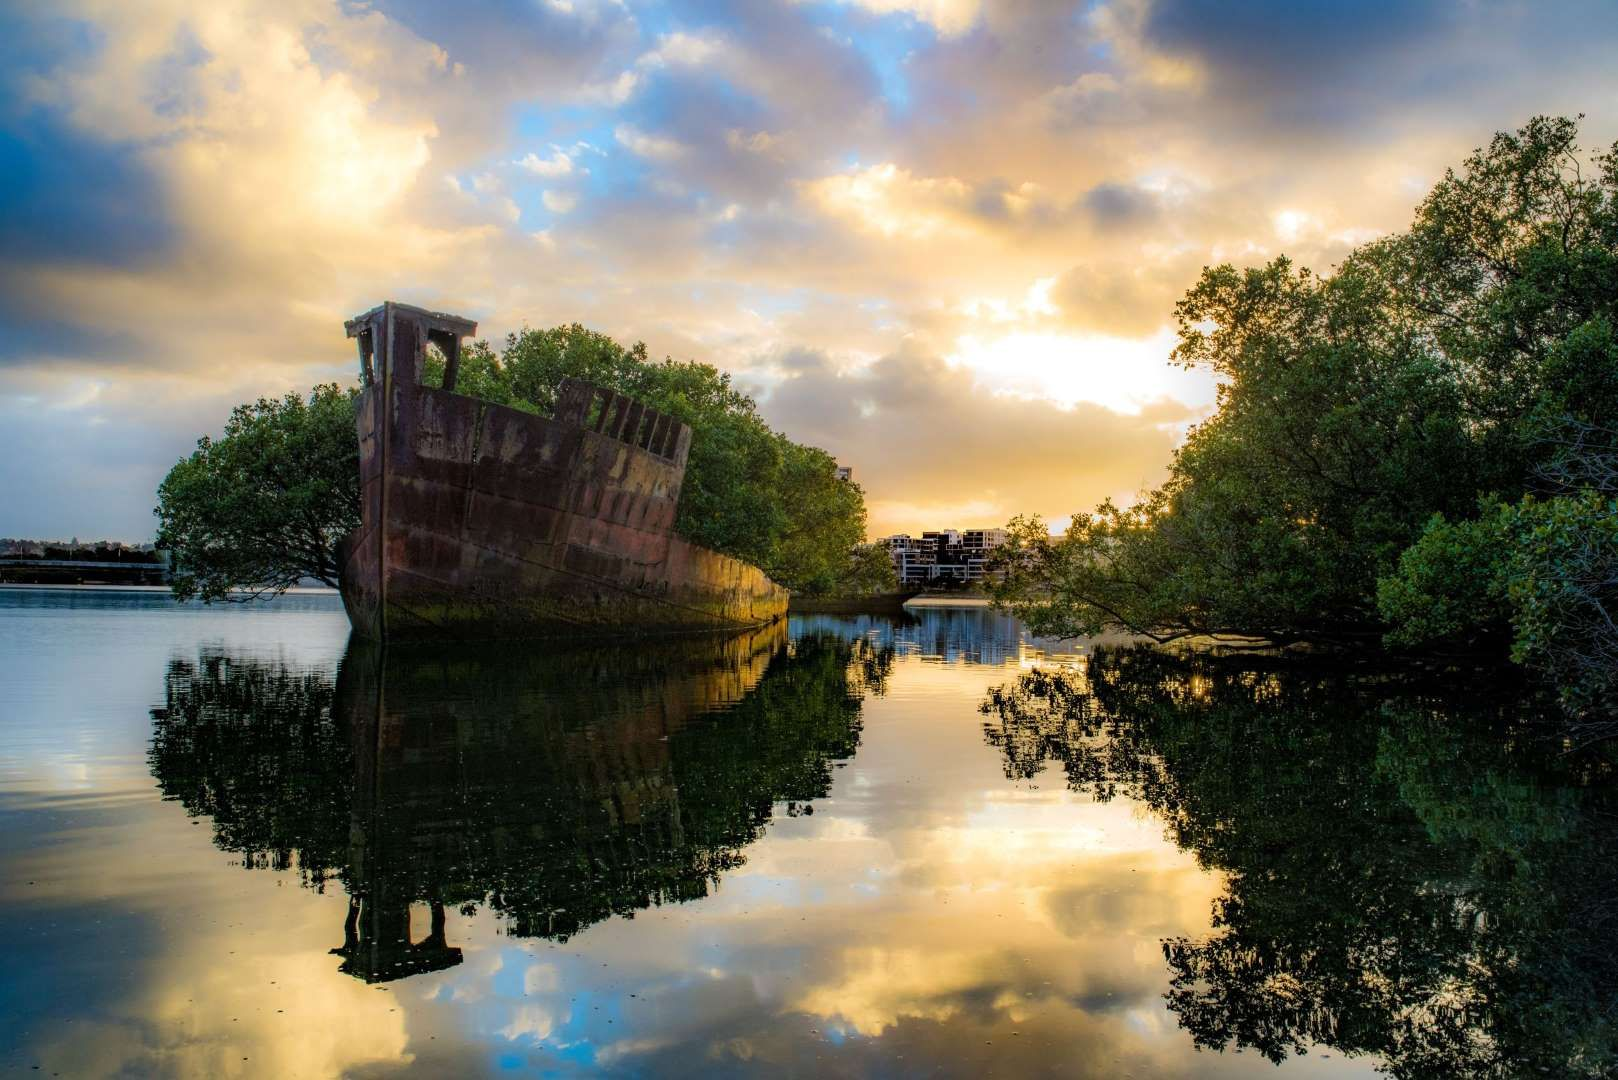 SS Ayrfield Shipwreck At Homebush Sydney Olympic Park